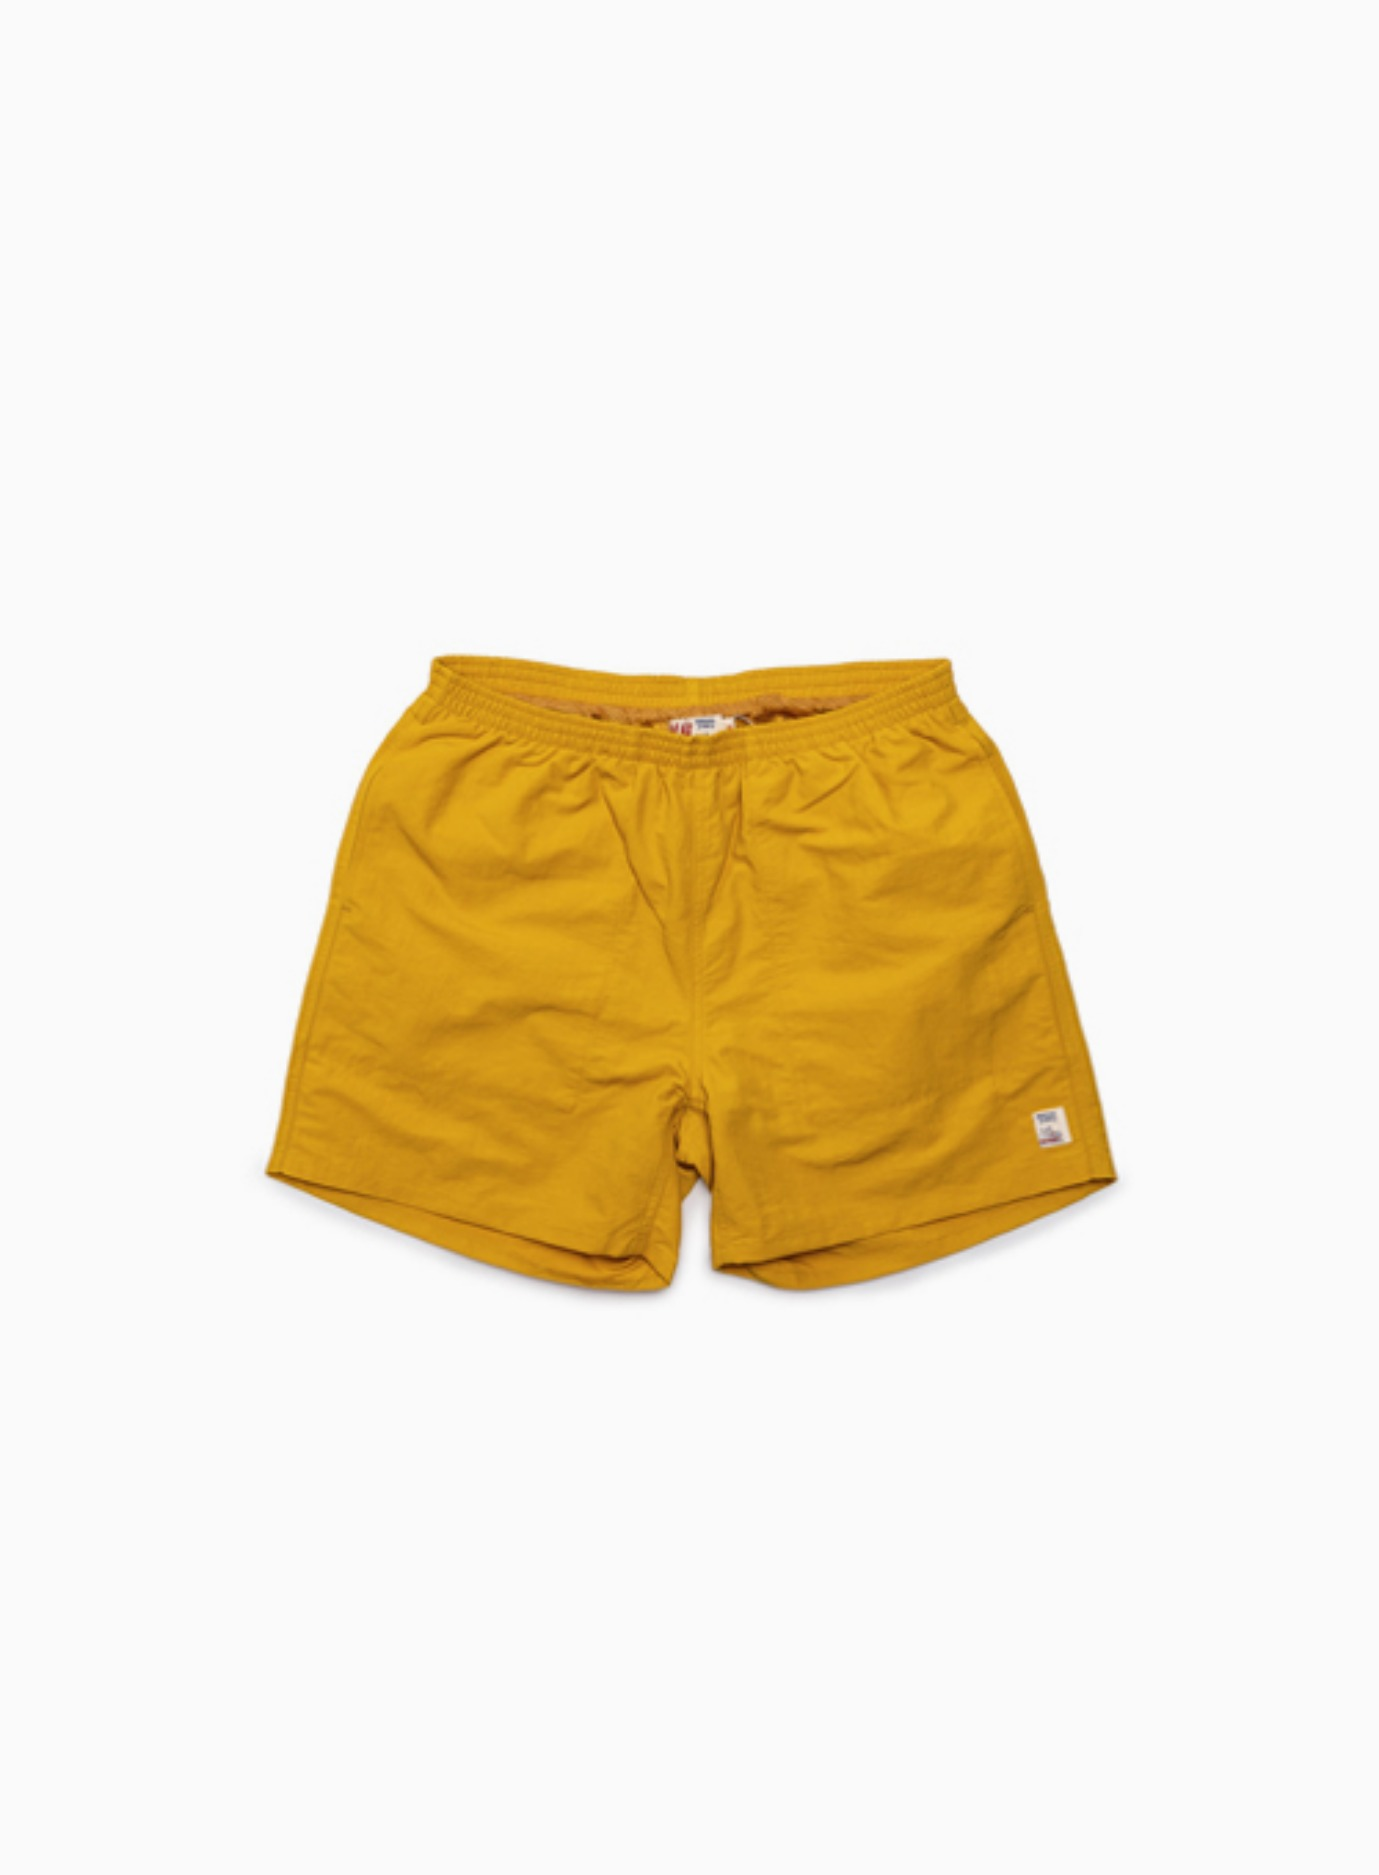 FATIGUE SHORTS (YELLOW)